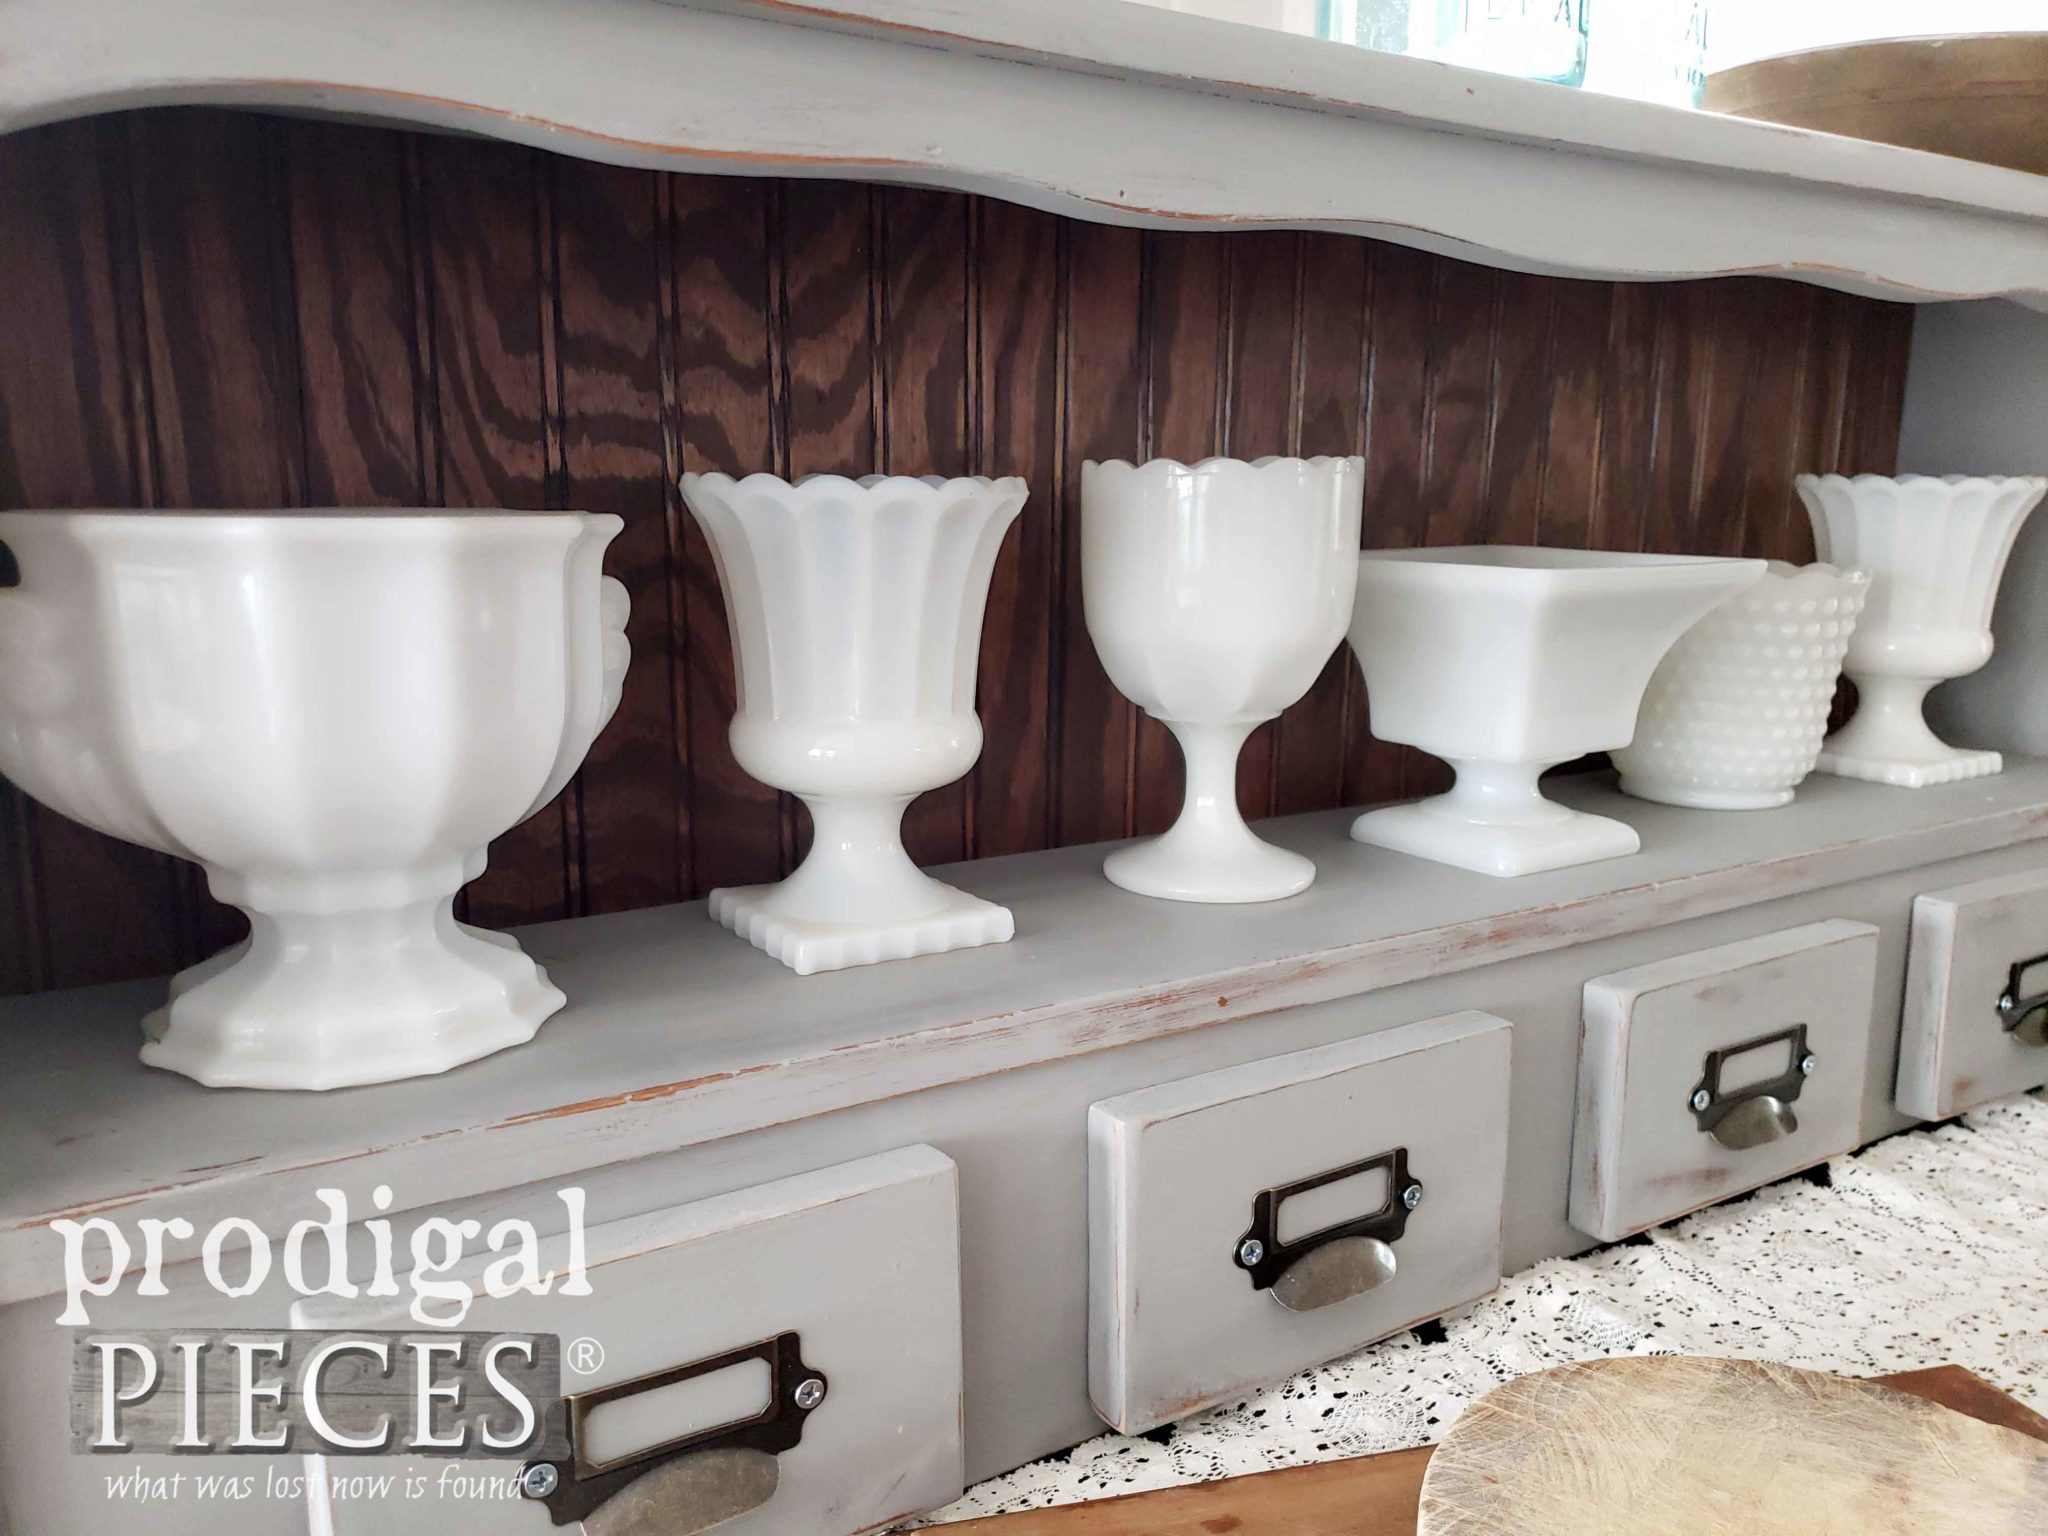 Vintage Milk Glass Urn Collection by Larissa of Prodigal Pieces | prodigalpieces.com #prodigalpieces #diy #farmhouse #vintage #home #retro #homedecor